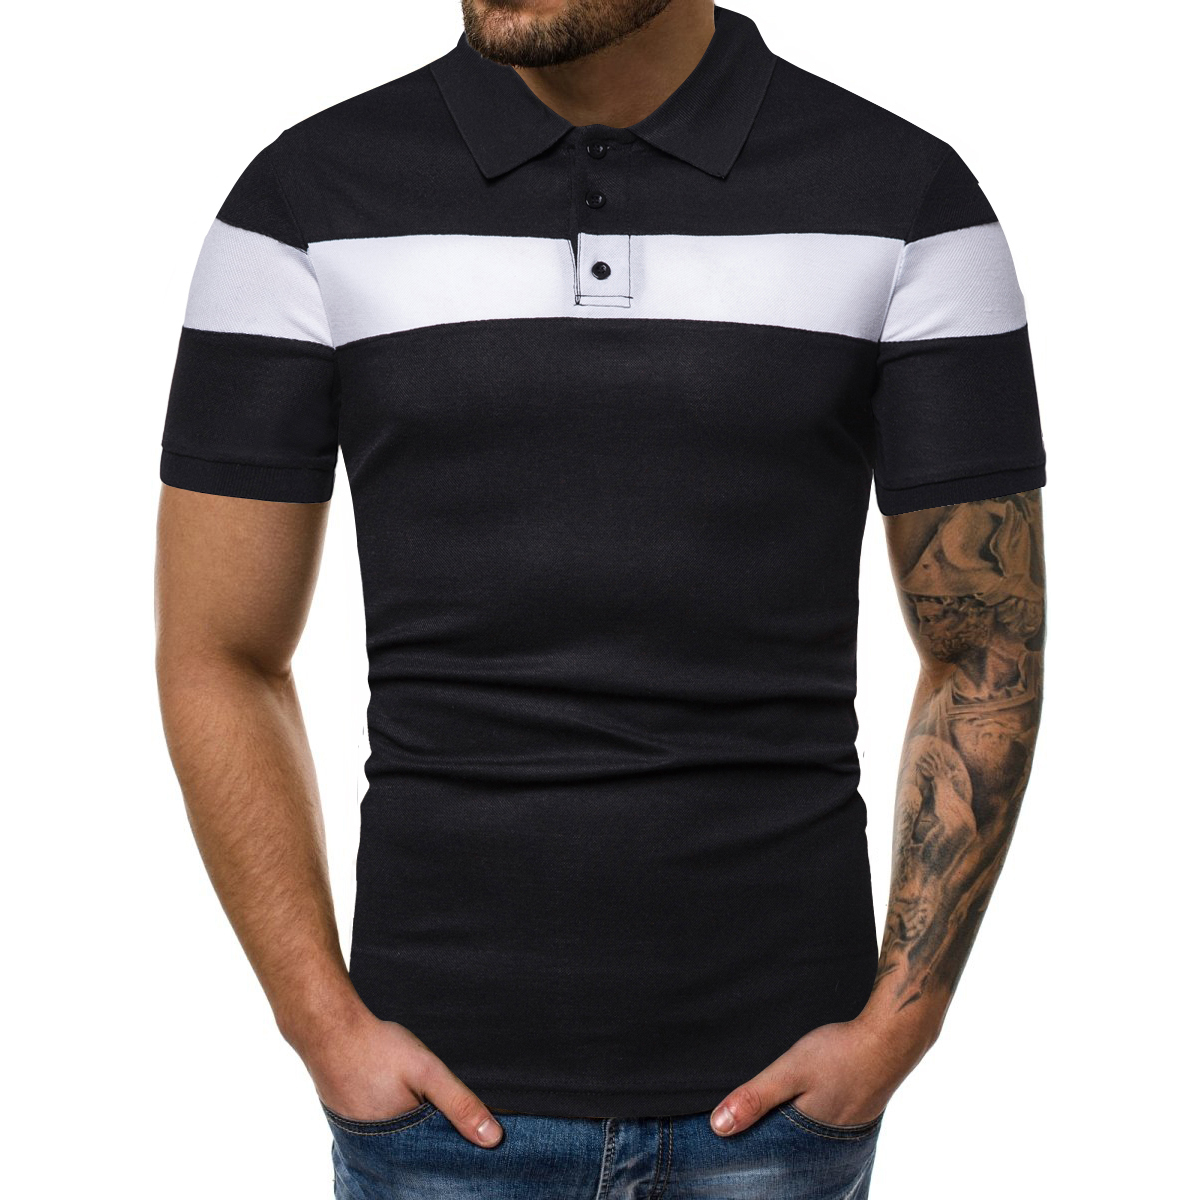 Lapel Breathable Men's Shirts Top With O Neckline Summer Short Sleeve Tee For Men Fashion Shirt Men Clothes S-XXL D30